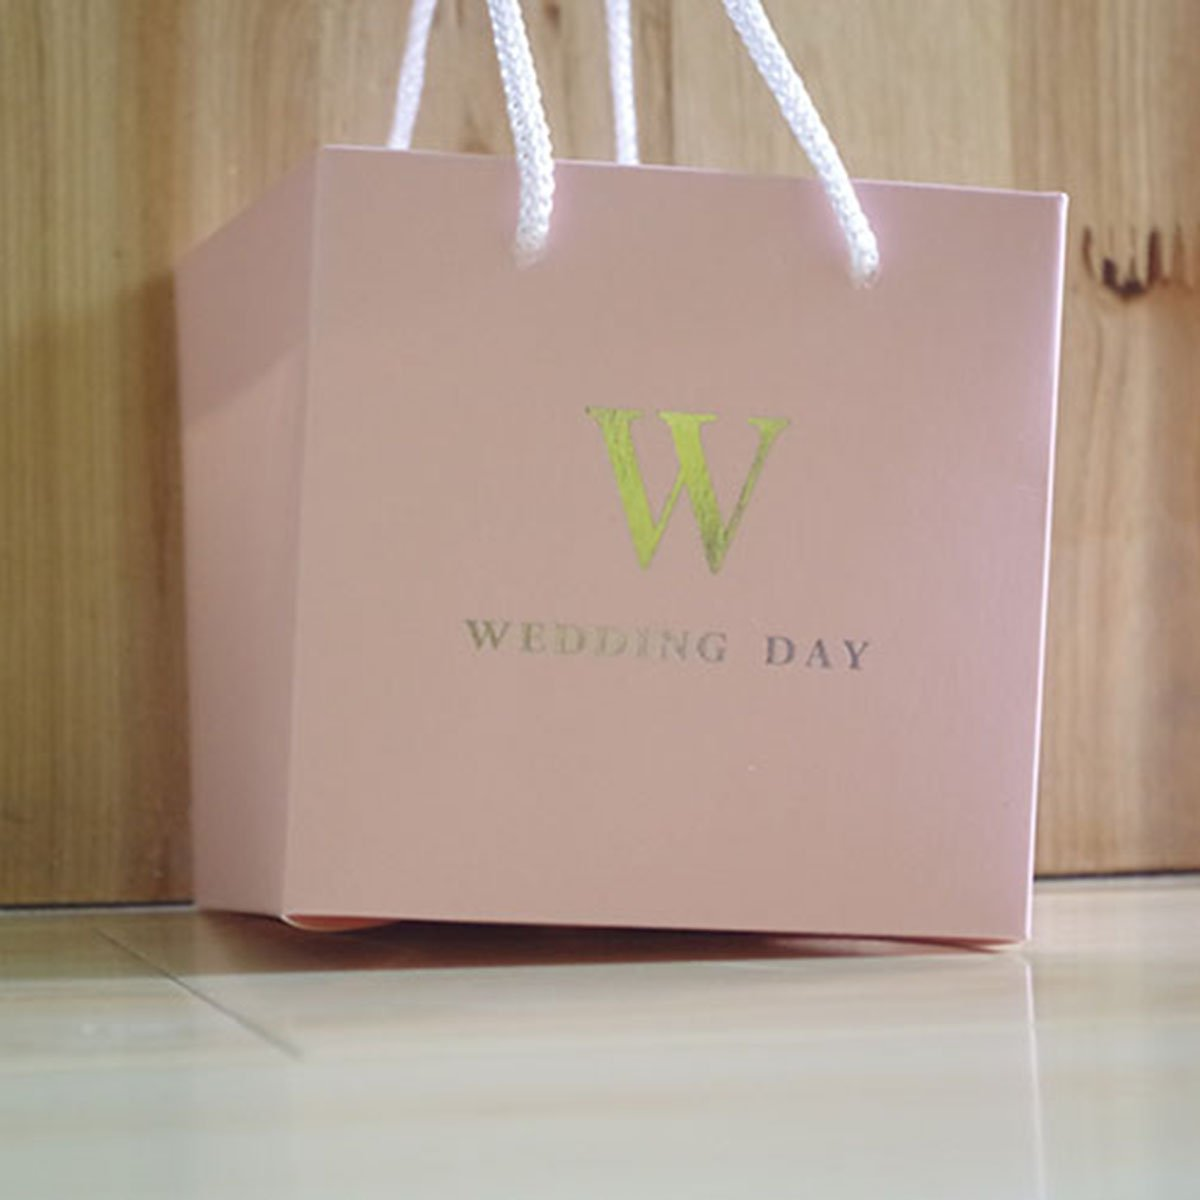 Amazon.com: MagiDeal 10pcs Letter W Wedding Day Loots Bag Paper Bag ...